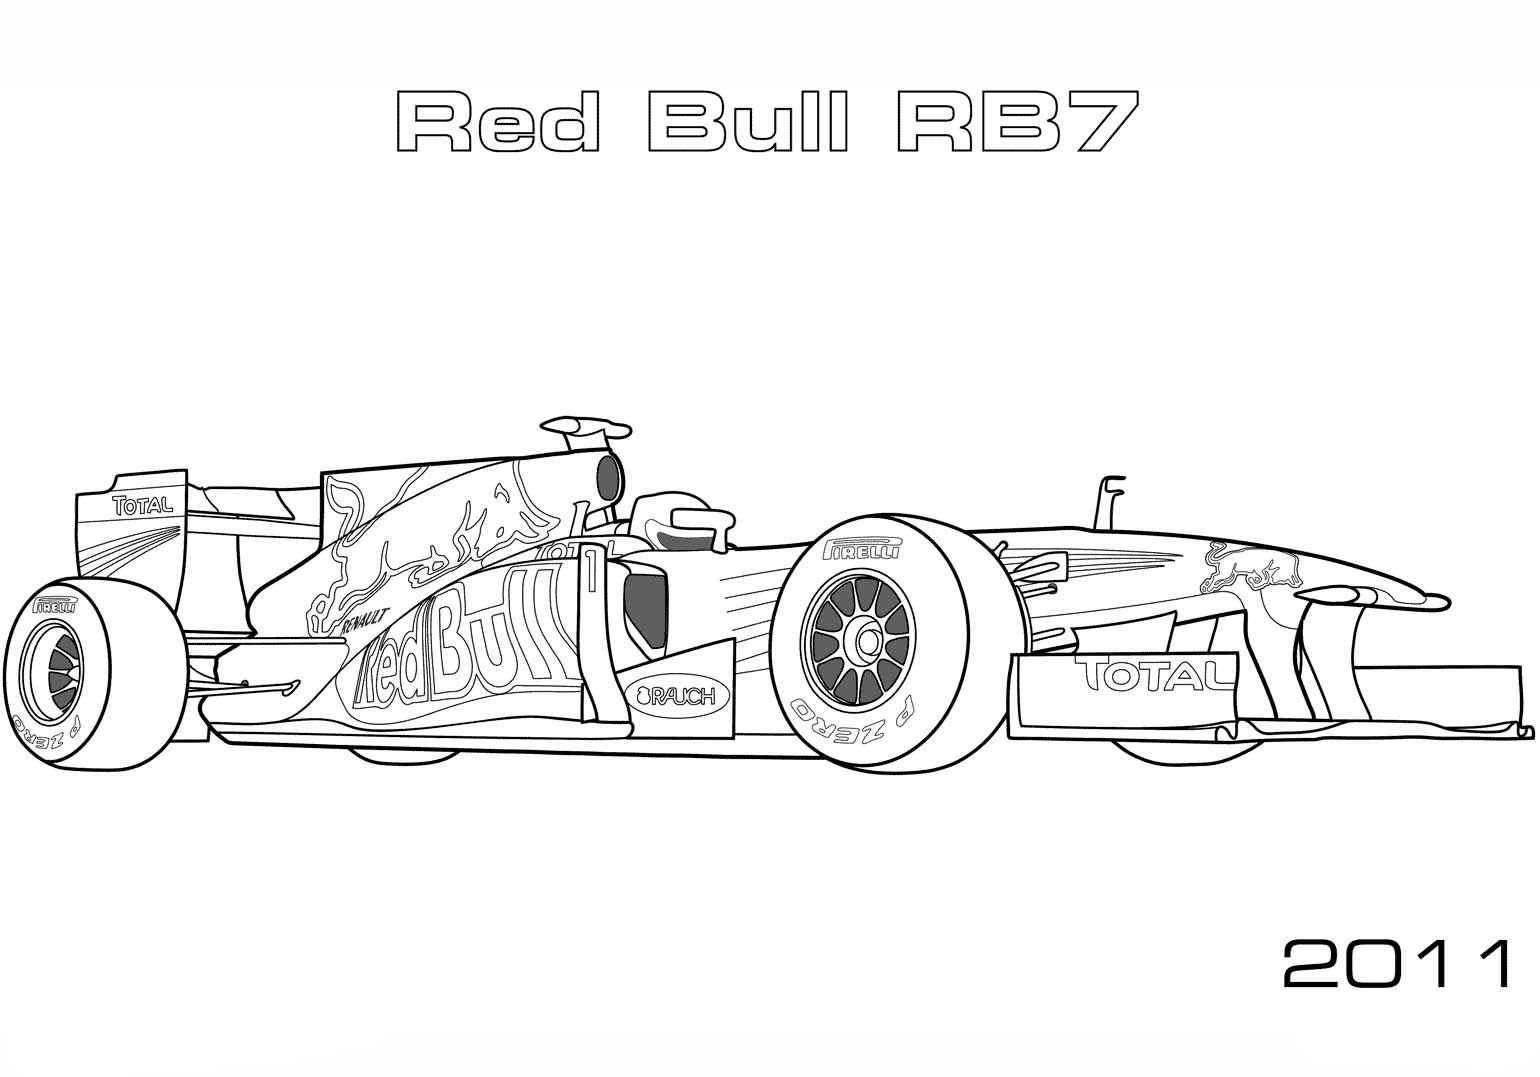 Red Bull Rb7 Formula 1 Racing Car Coloring Page Race Car Coloring Pages Cars Coloring Pages Coloring Pages